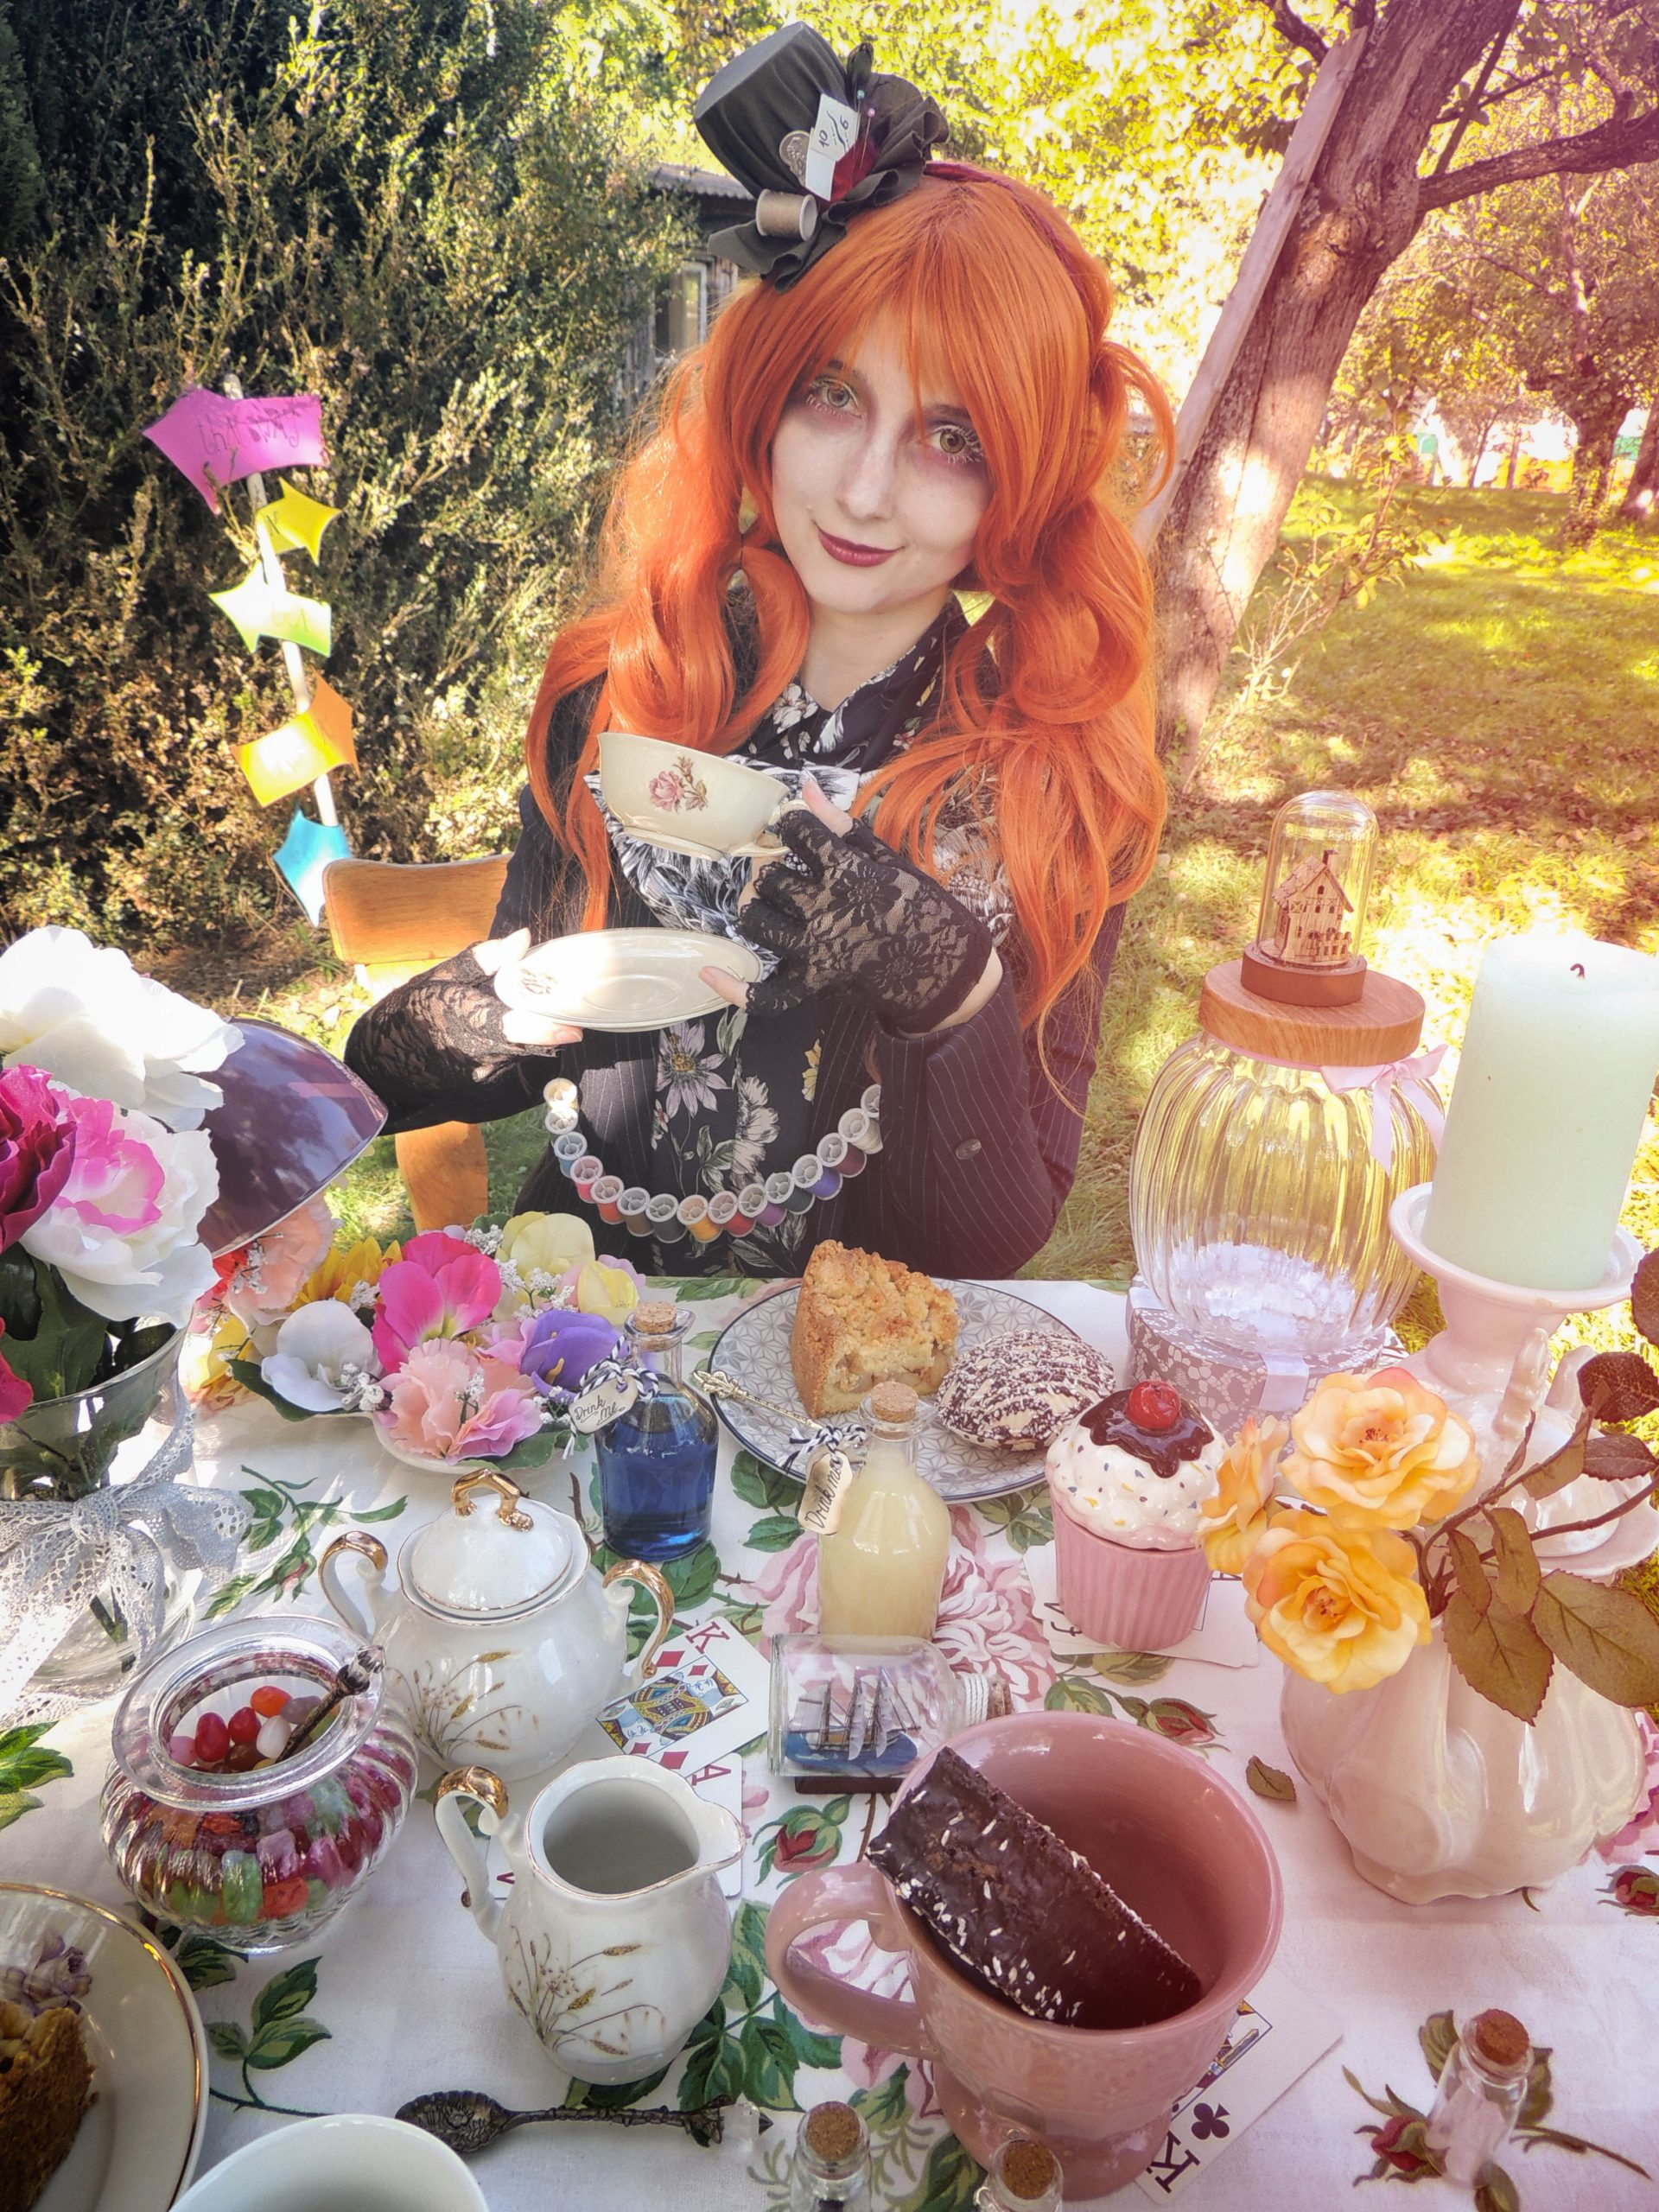 Mad Hatter Tea Party Evelyn Cosplay Unsplash